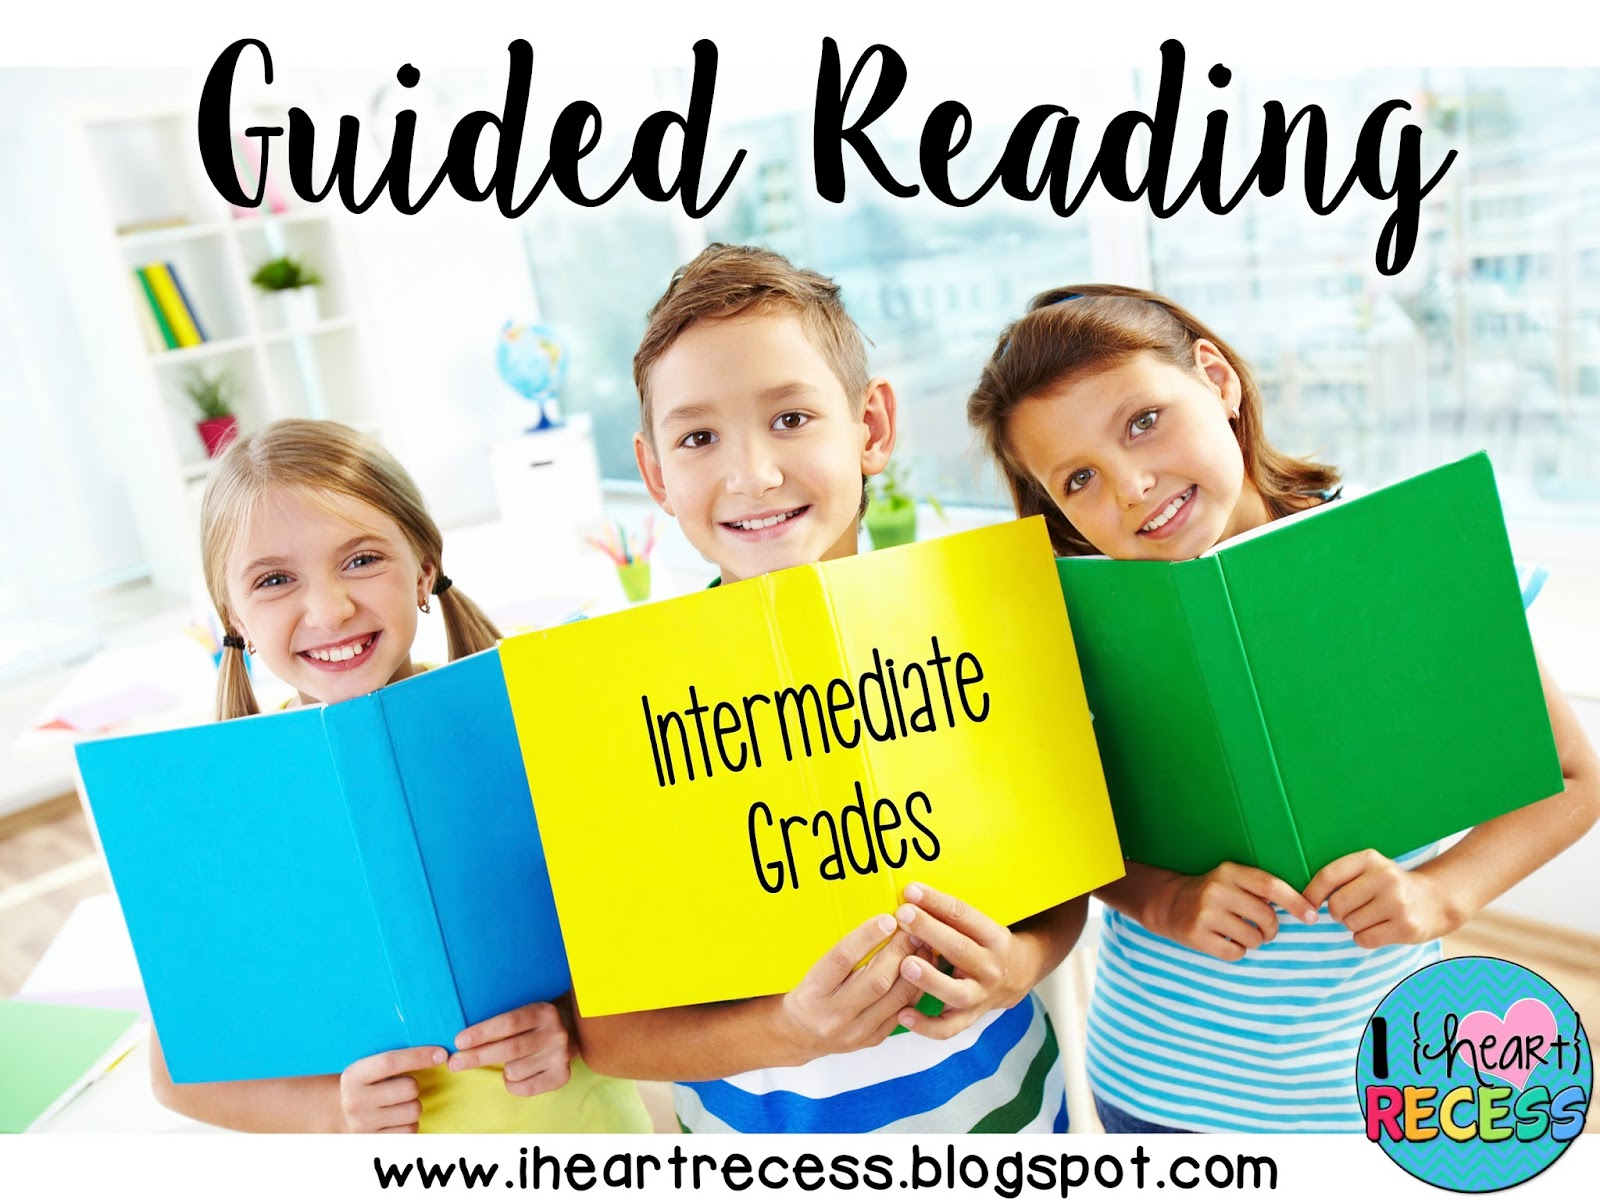 Guided Reading In The Intermediate Grades